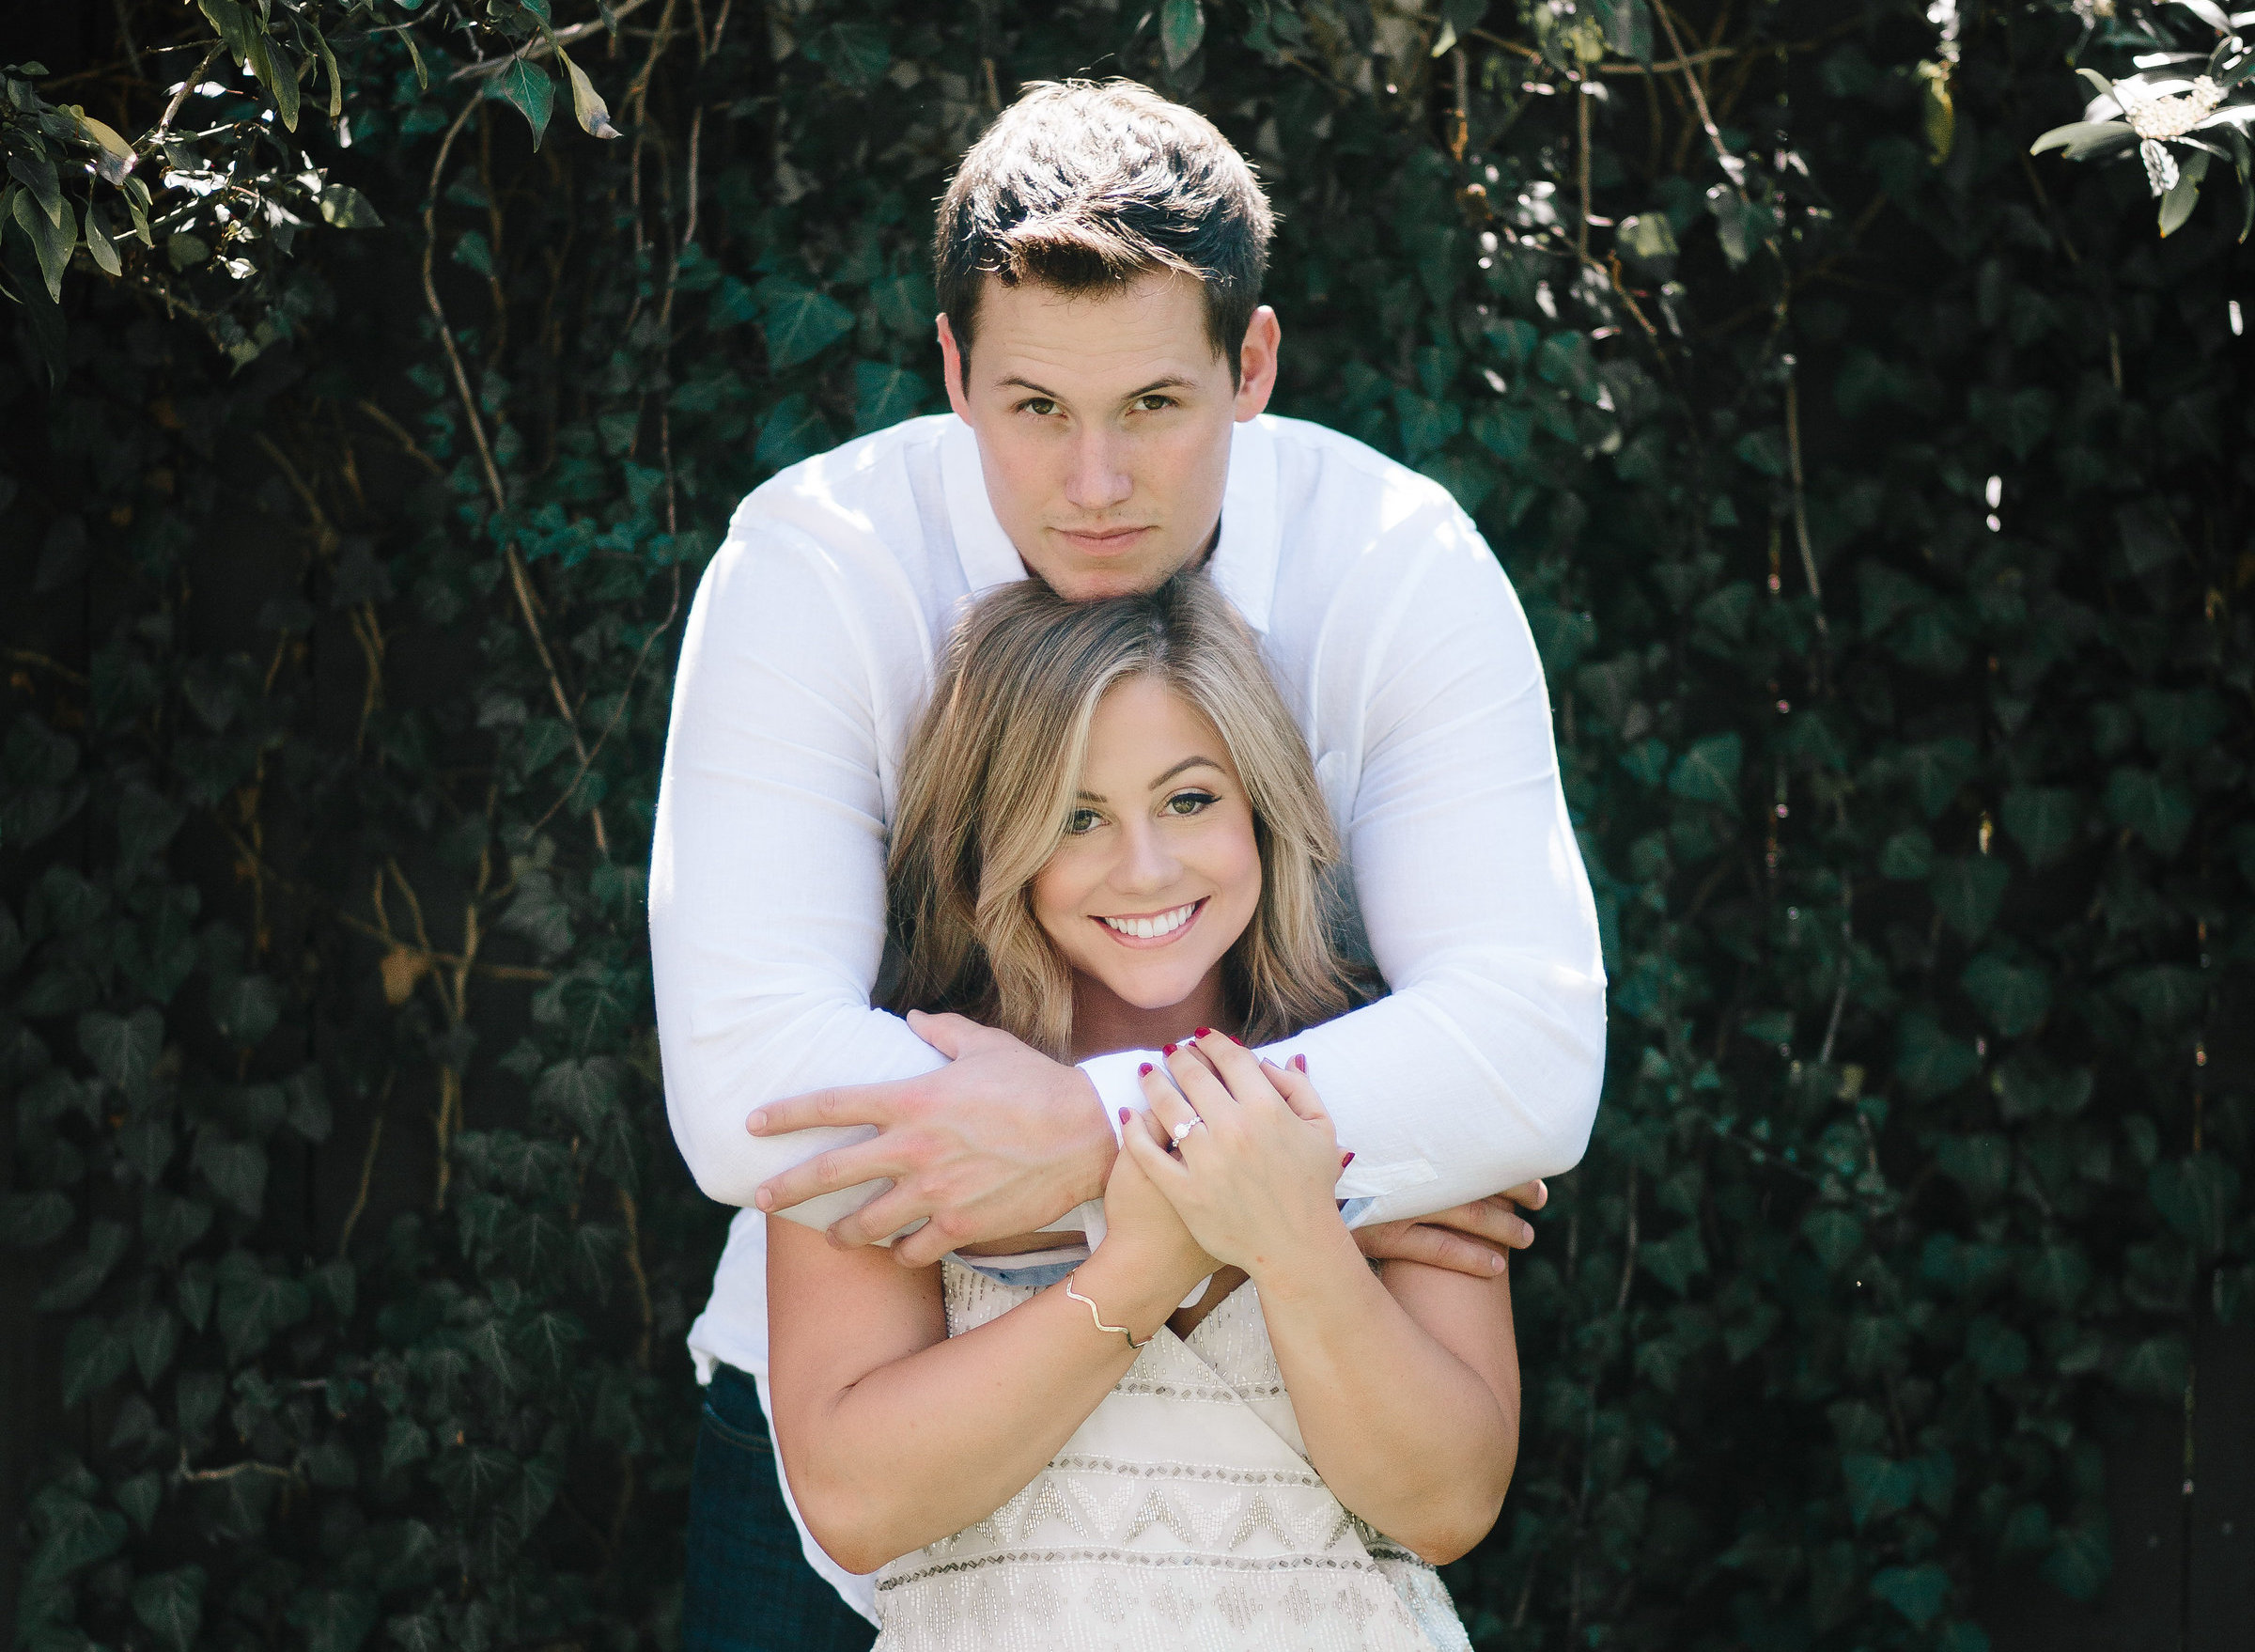 Shawn Johnson and Andrew East engagement photo